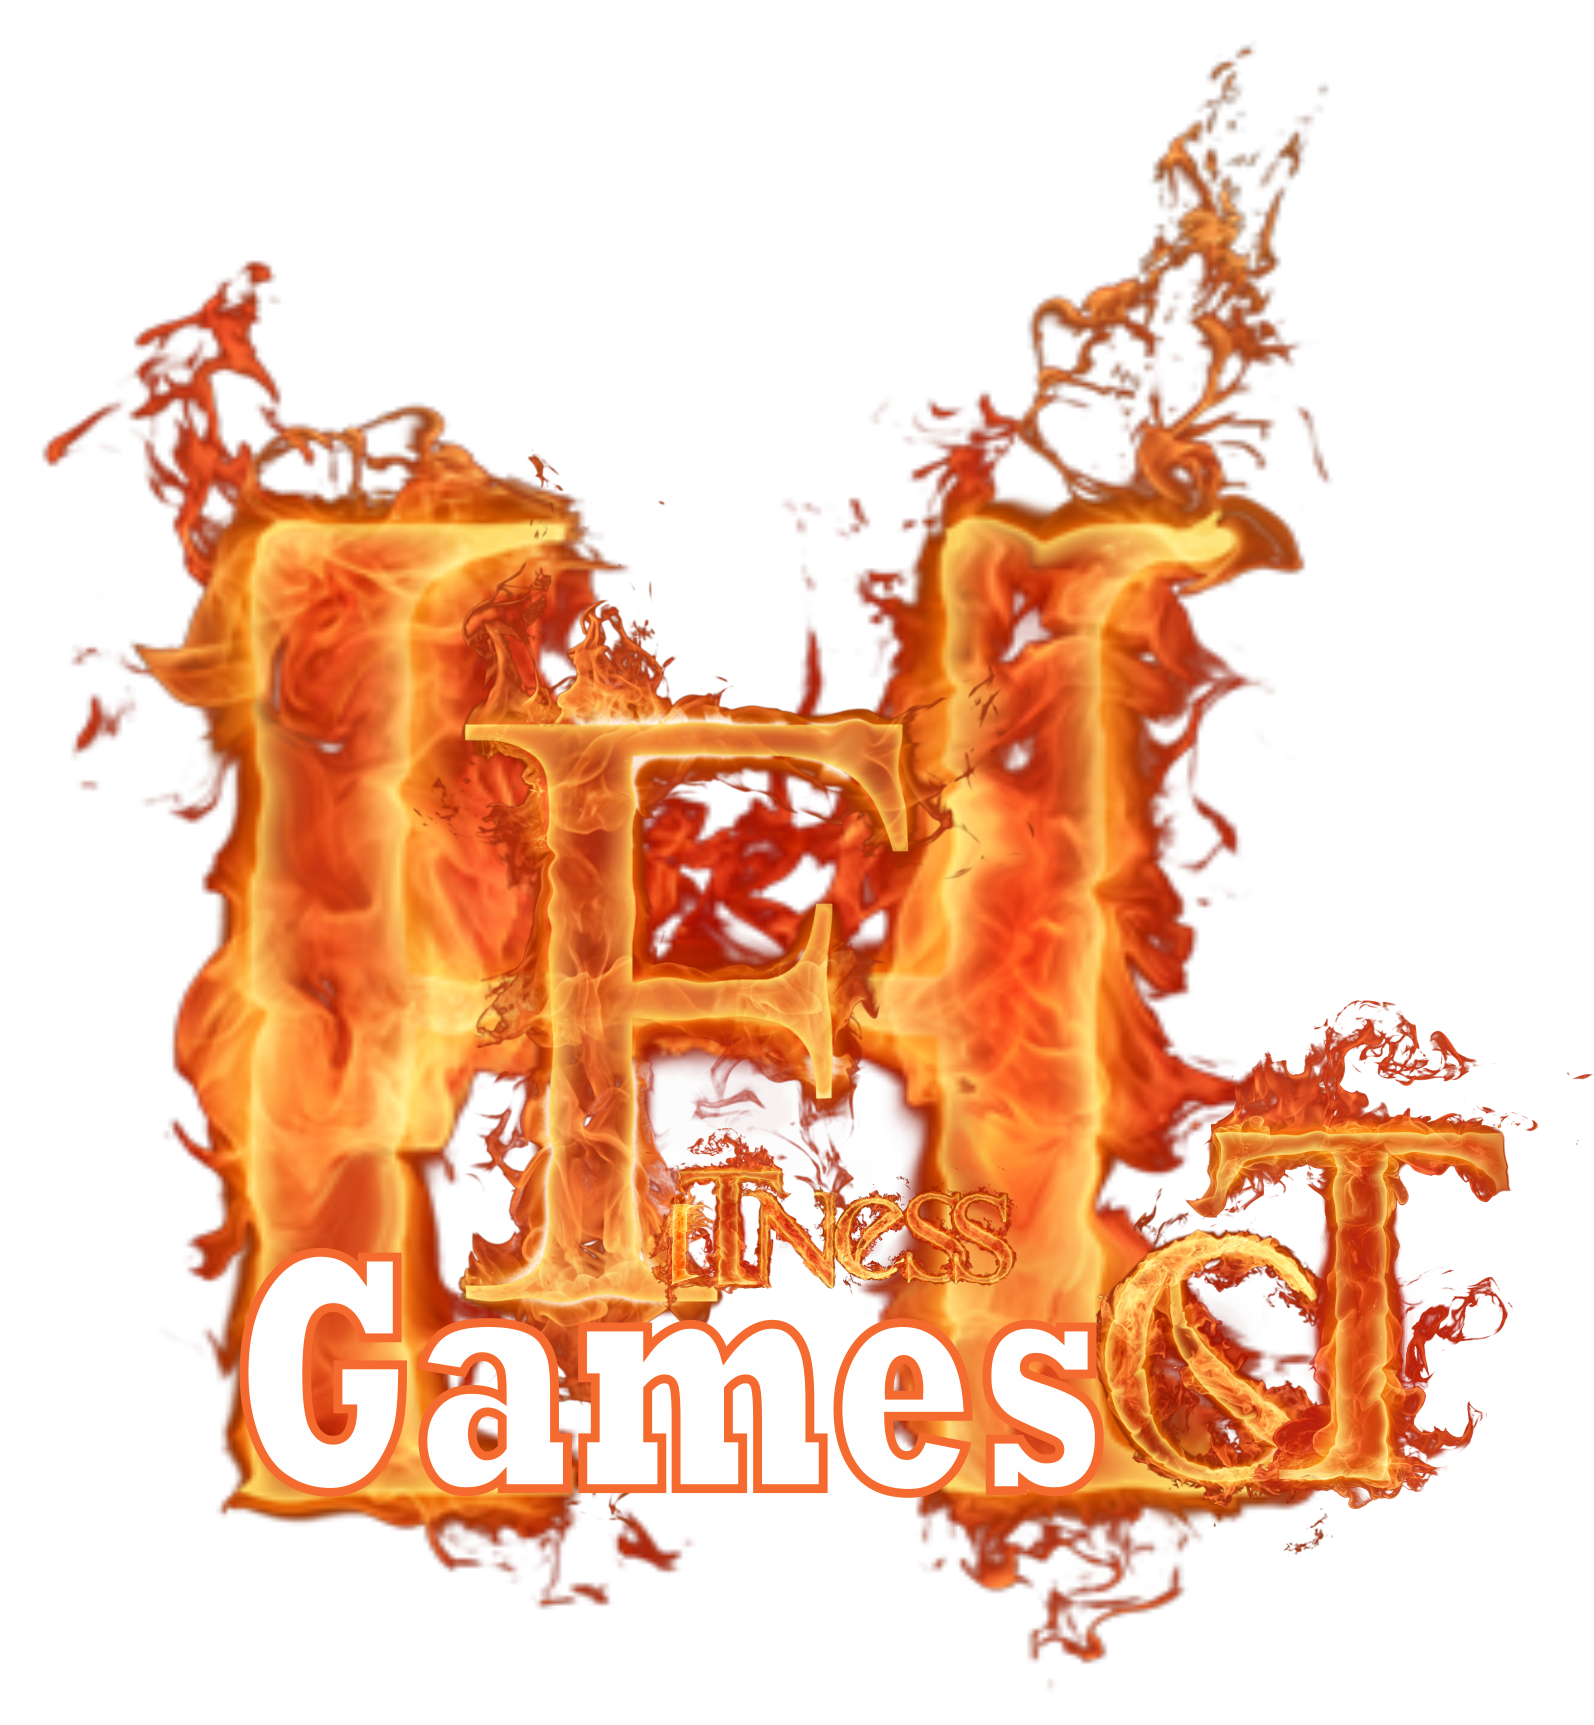 Hot Fitness Games logo